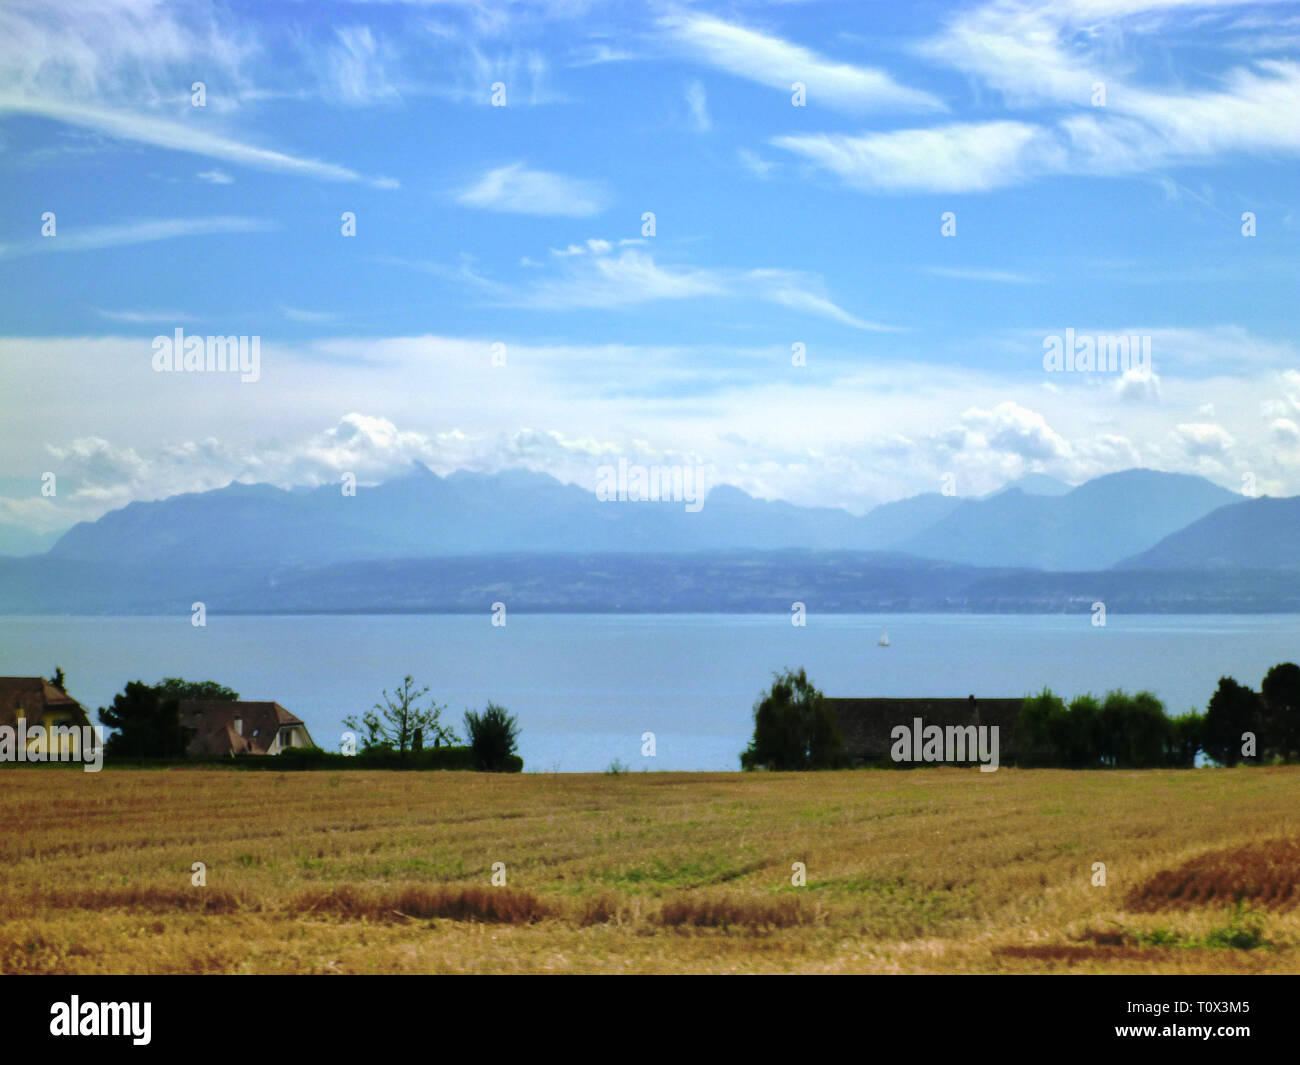 Scenery on the Lake Leman - Swiss. View of the french Alps in background - Stock Image